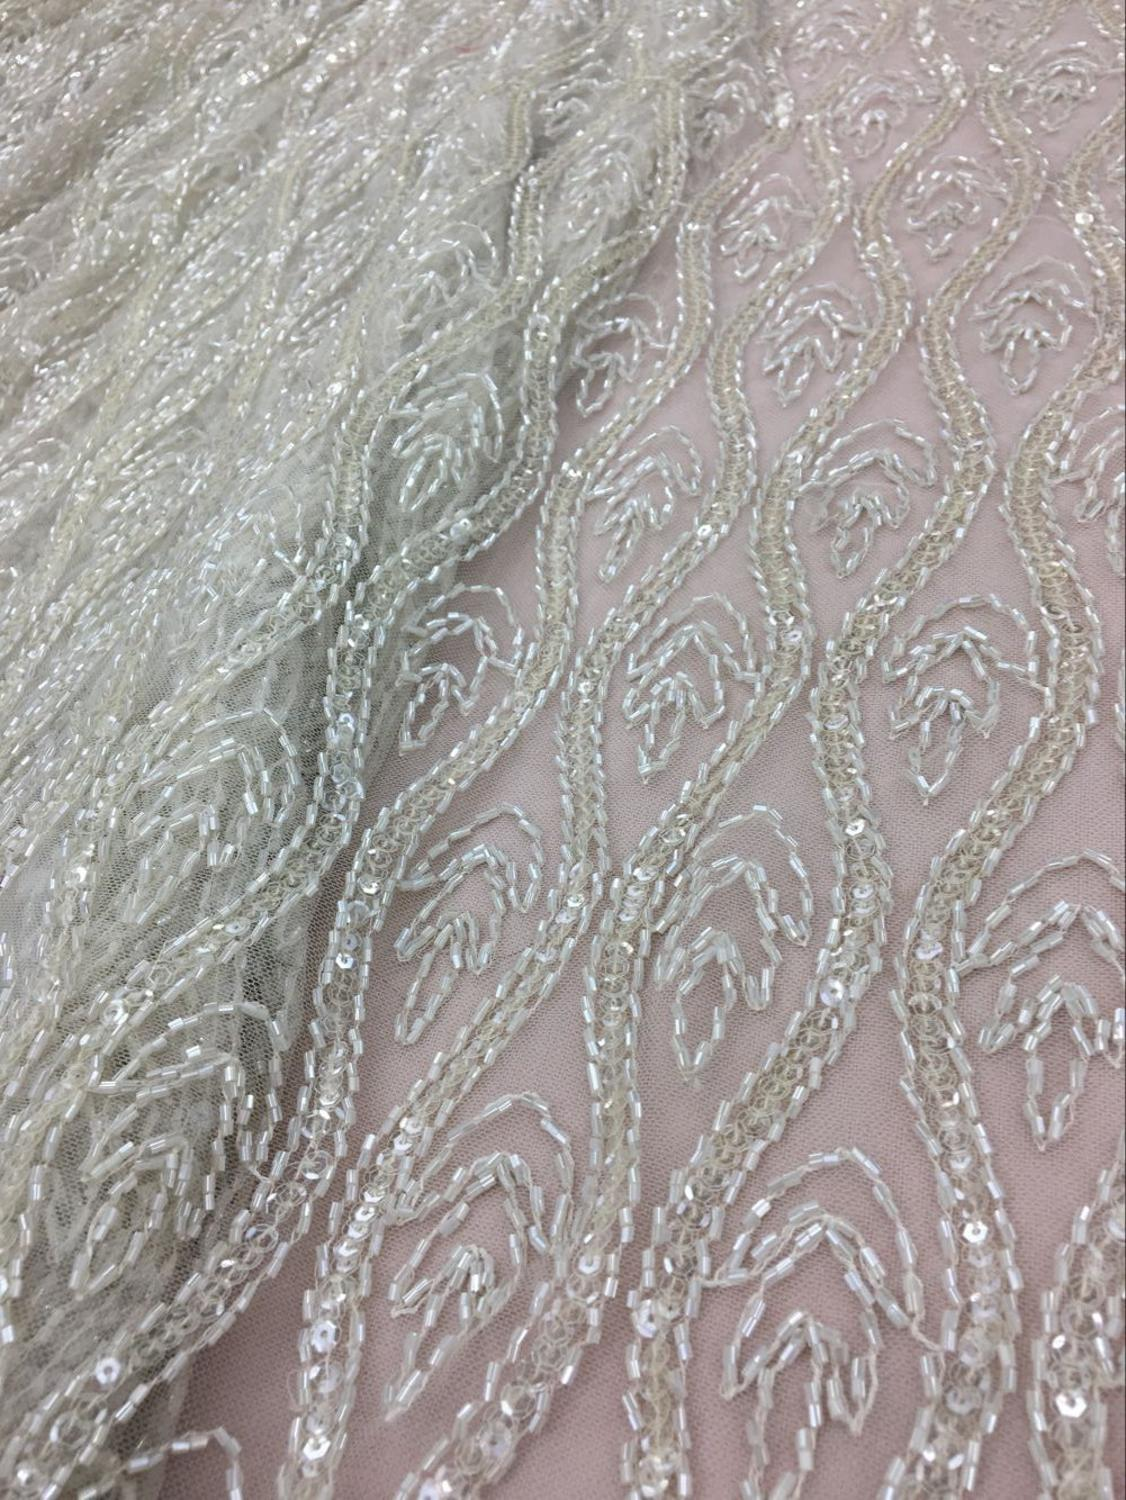 Beaded Lace Fabric Heavy Bead Lace Fabric For Haute Couture Dress High End Hand Beaded Lace Fabric Evening Dress Lace Fabric(China)